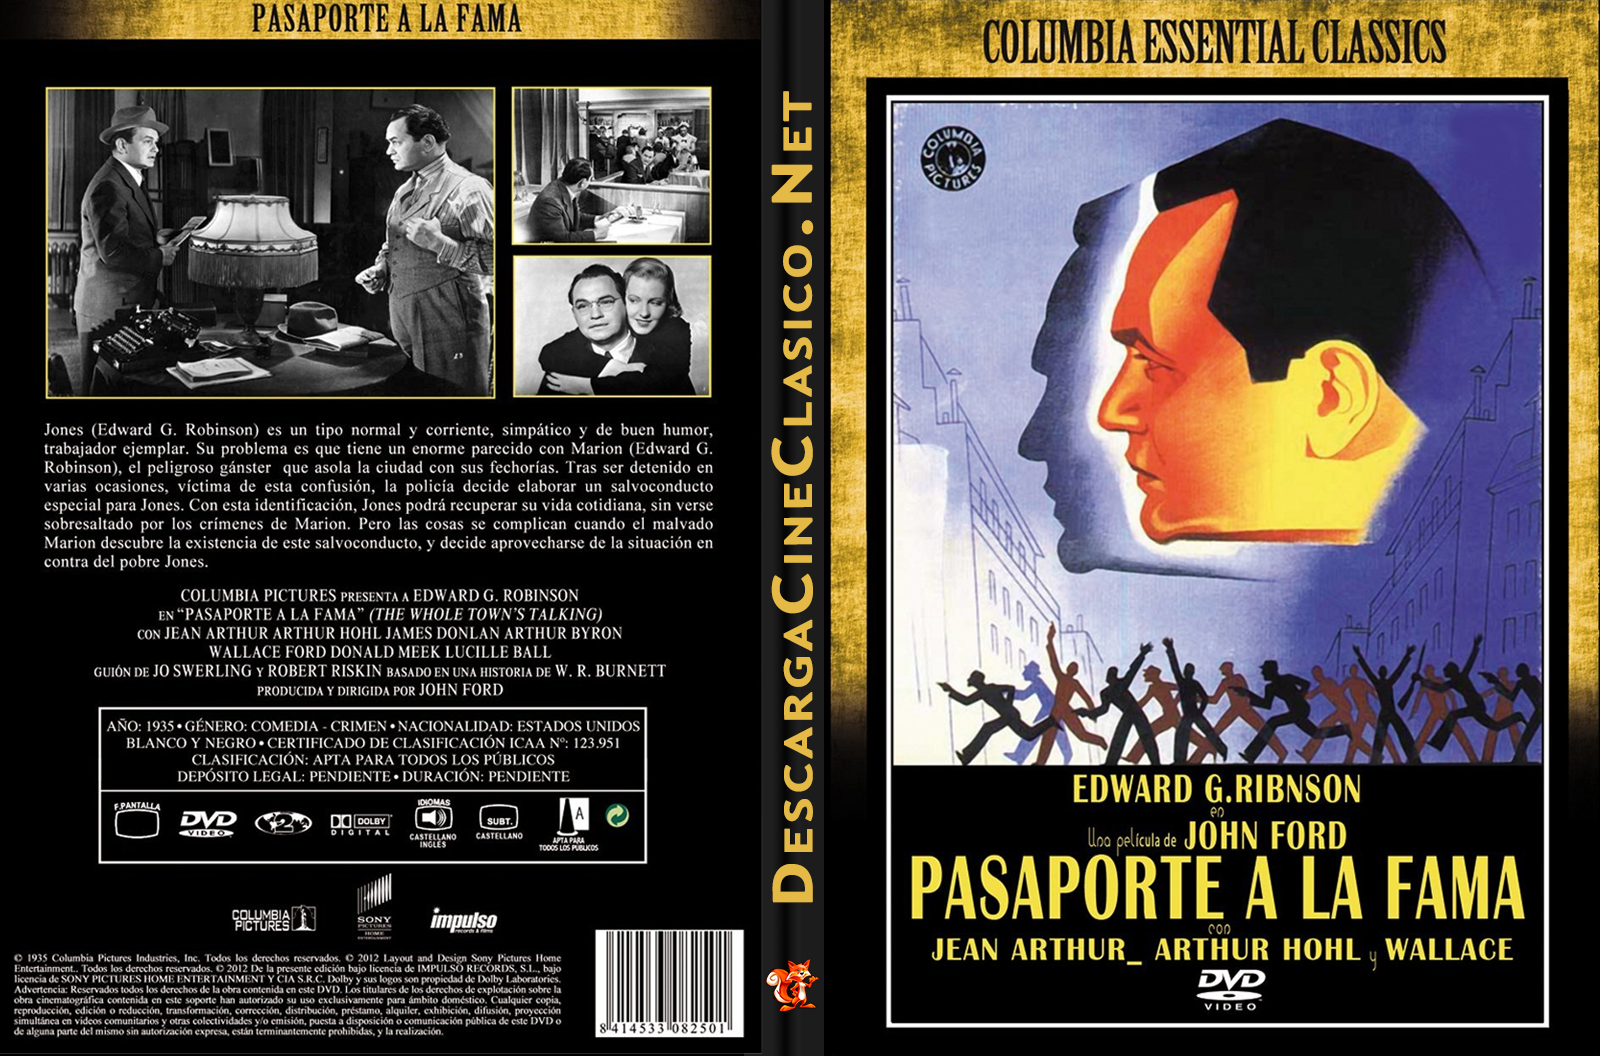 Pasaporte a la fama (Passport to Fame – 1935)